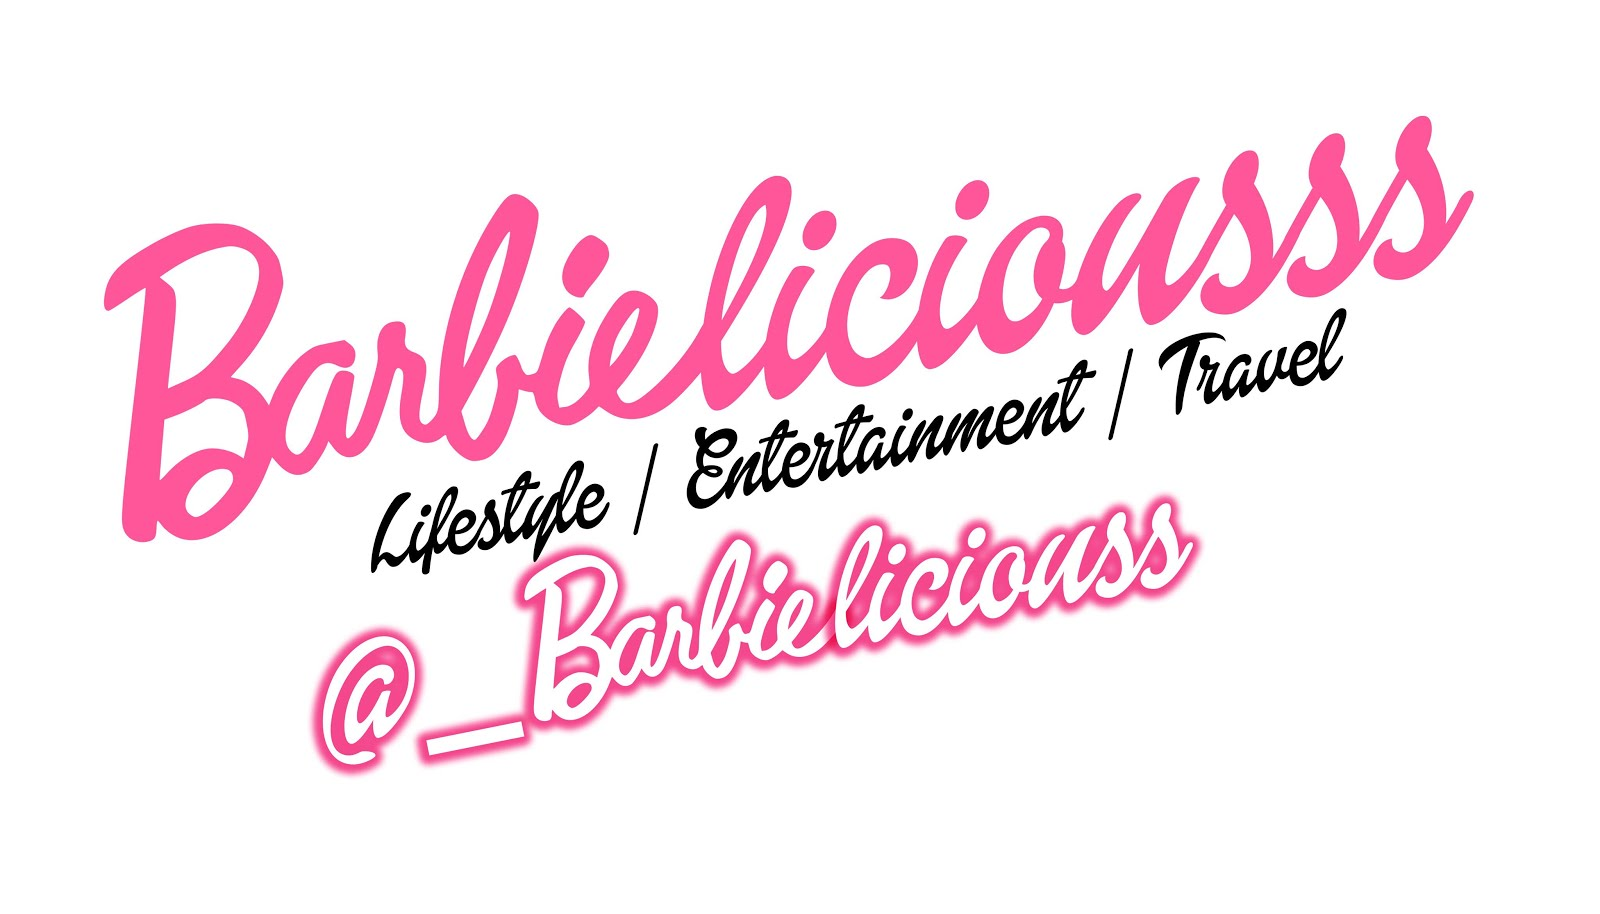 Barbieliciousss